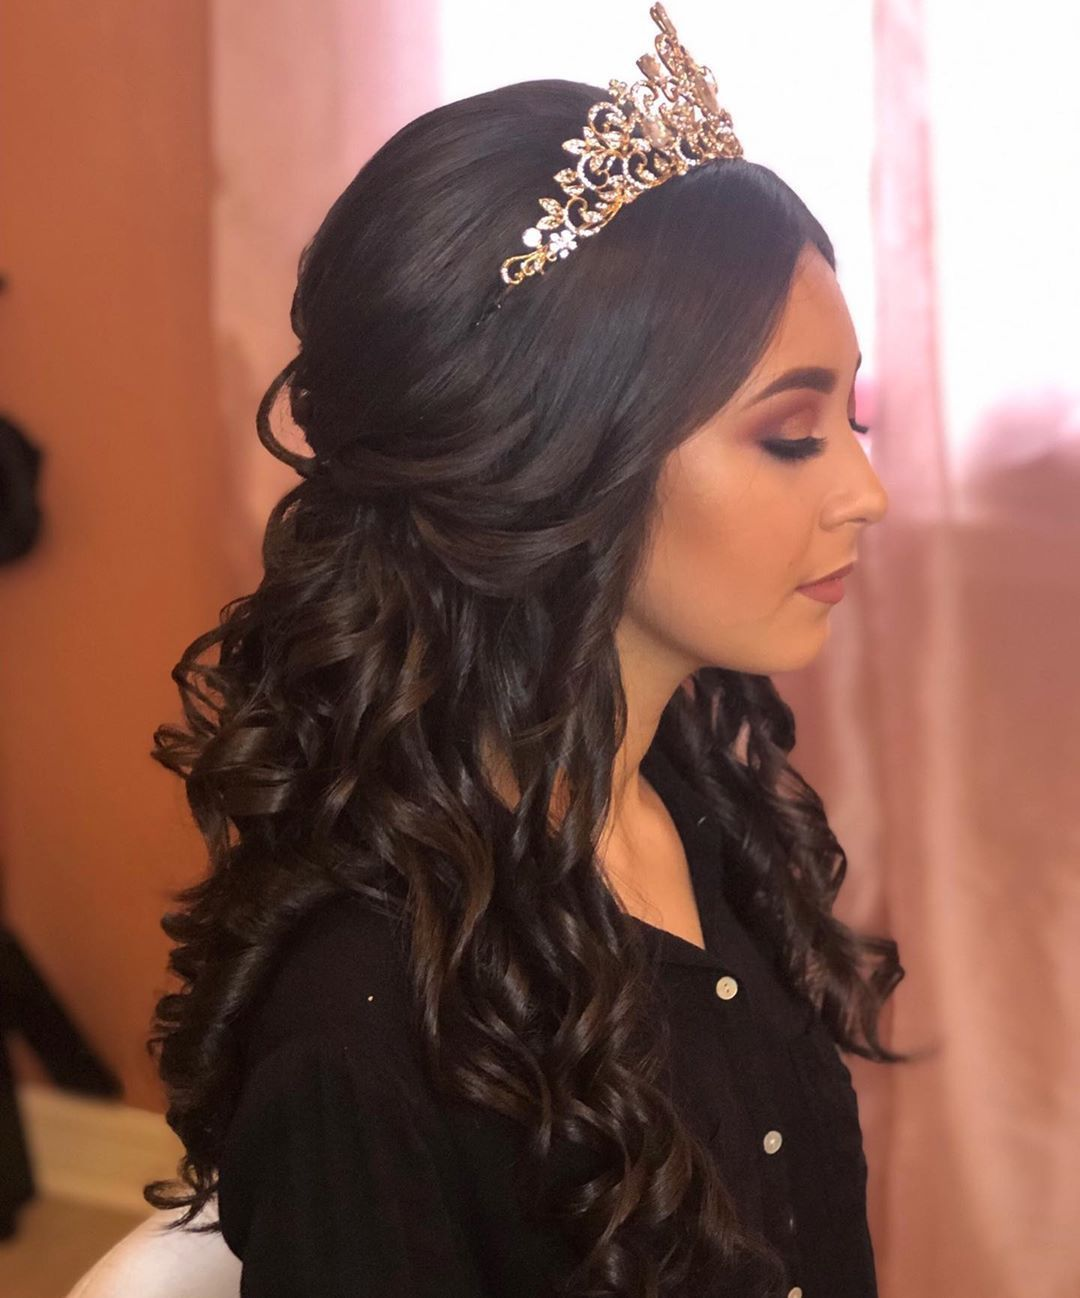 78 Half Up Half Down Quinceanera Hairstyles Hairstyle Half Up Half Down In 2020 Quince Hairstyles Quinceanera Hairstyles Hair Styles